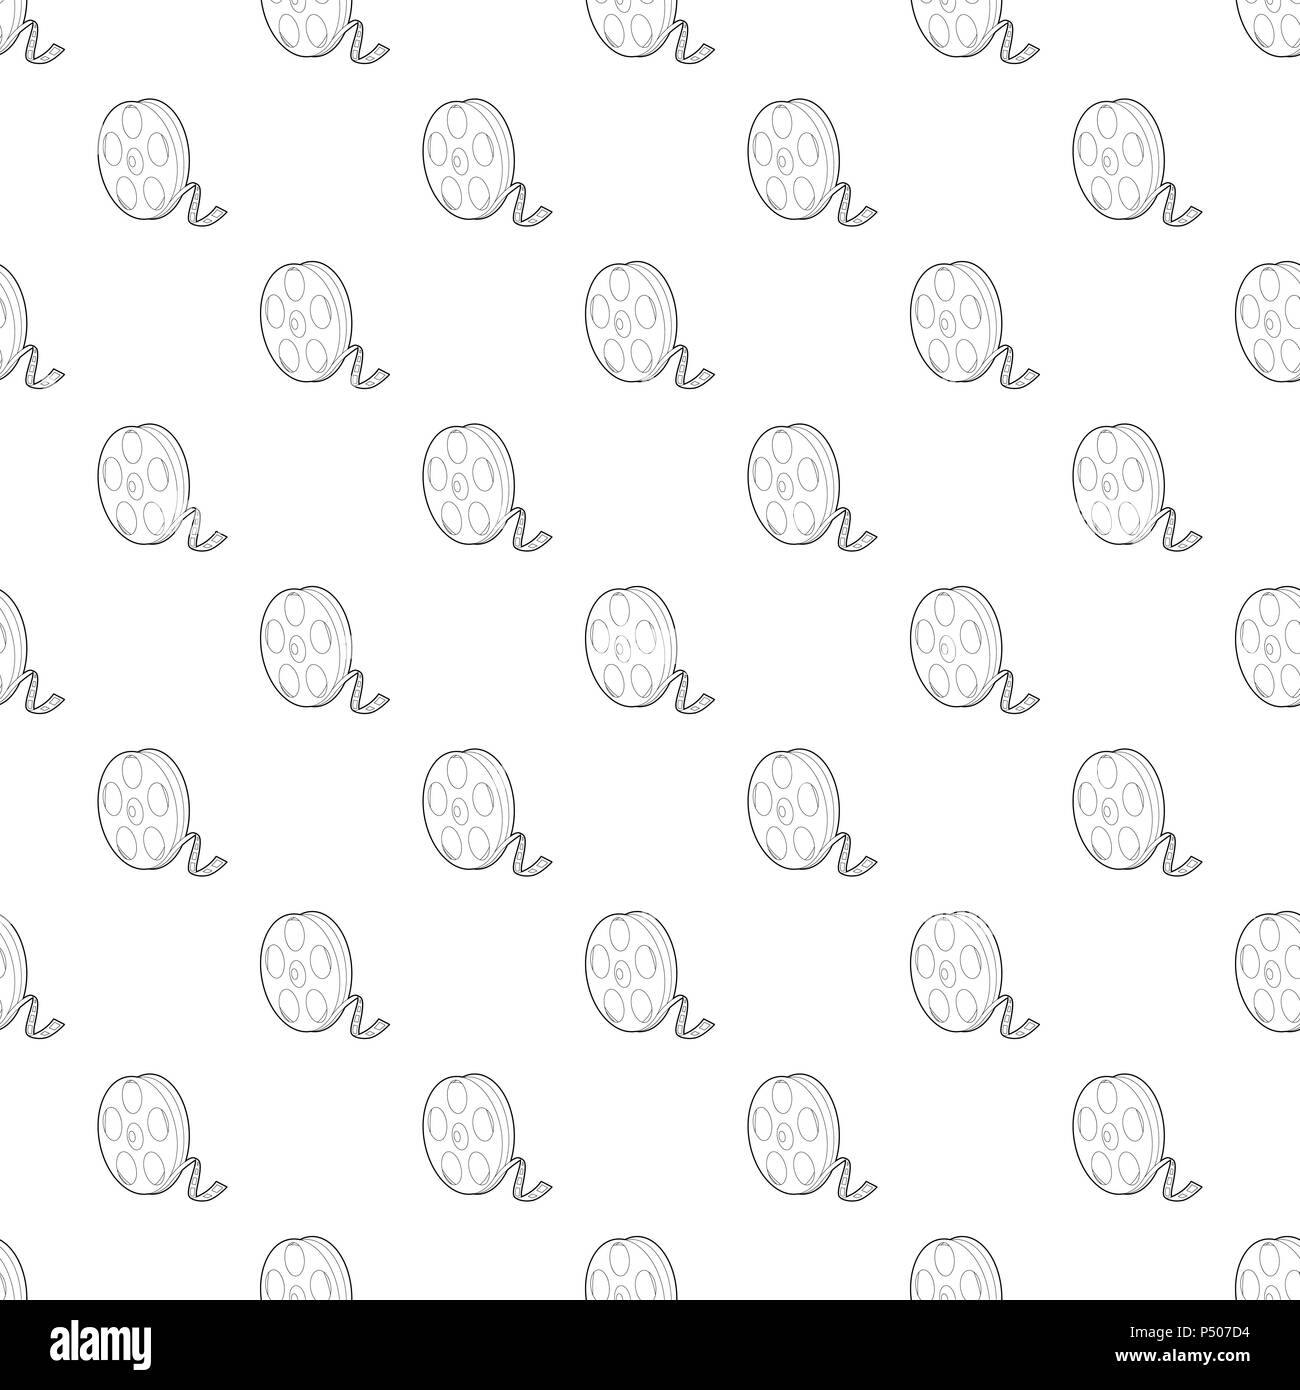 Reel pattern vector seamless - Stock Image